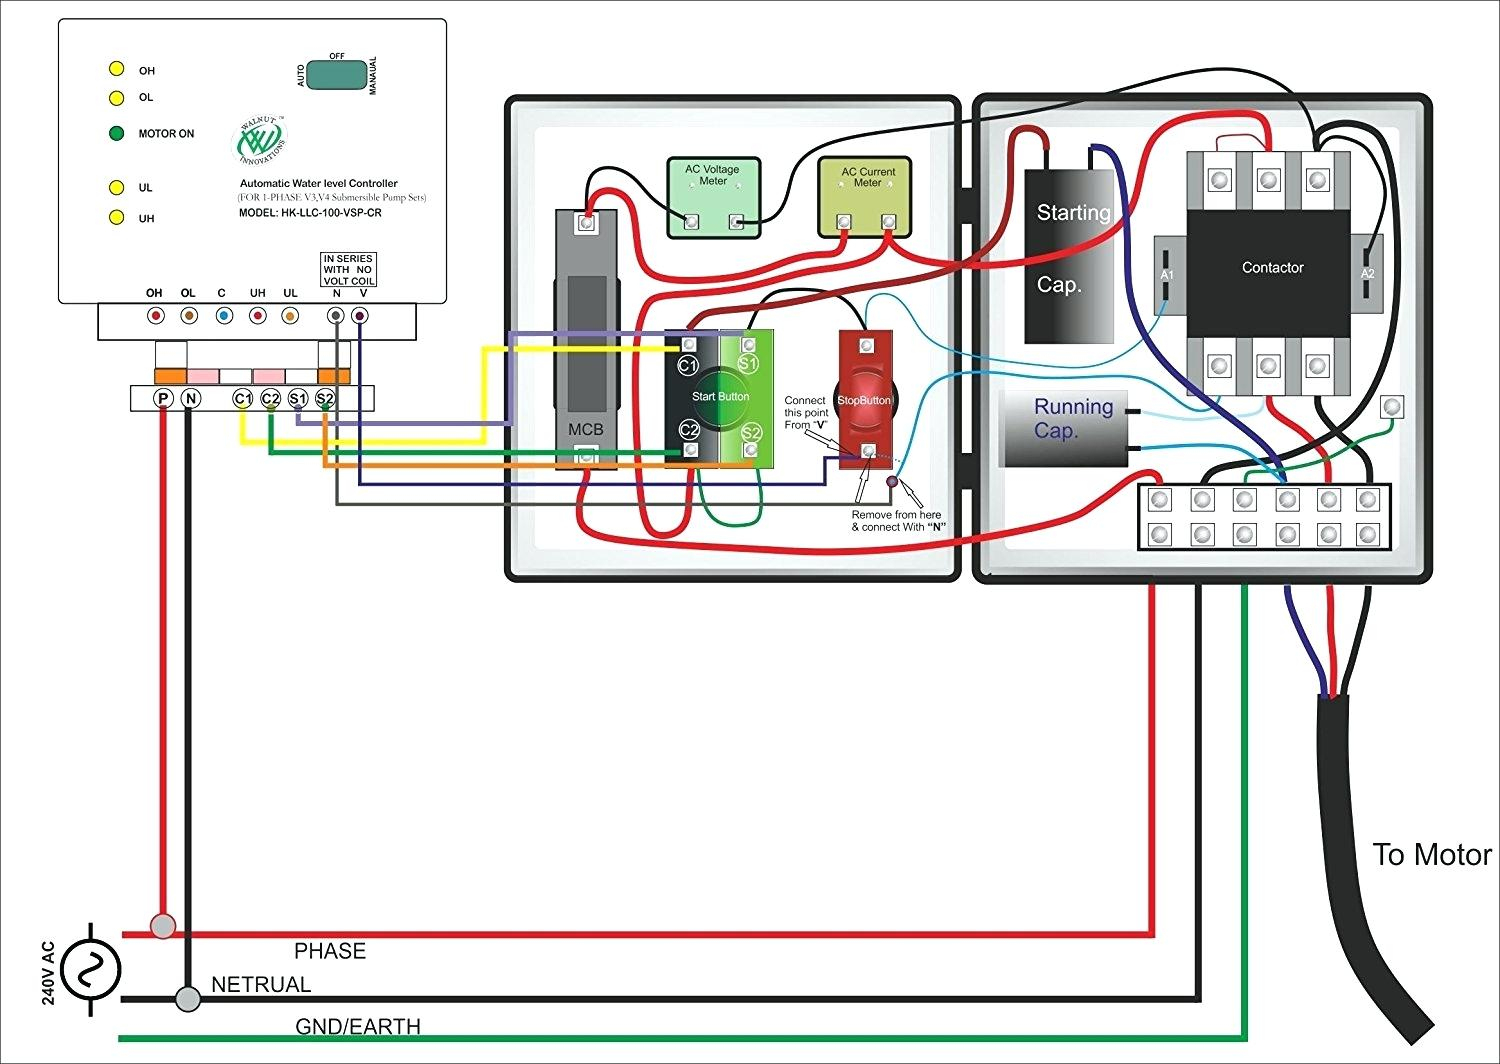 Single Phase Submersible Pump Starter Wiring Diagram 3 Wire Well - 3 Wire Submersible Pump Wiring Diagram